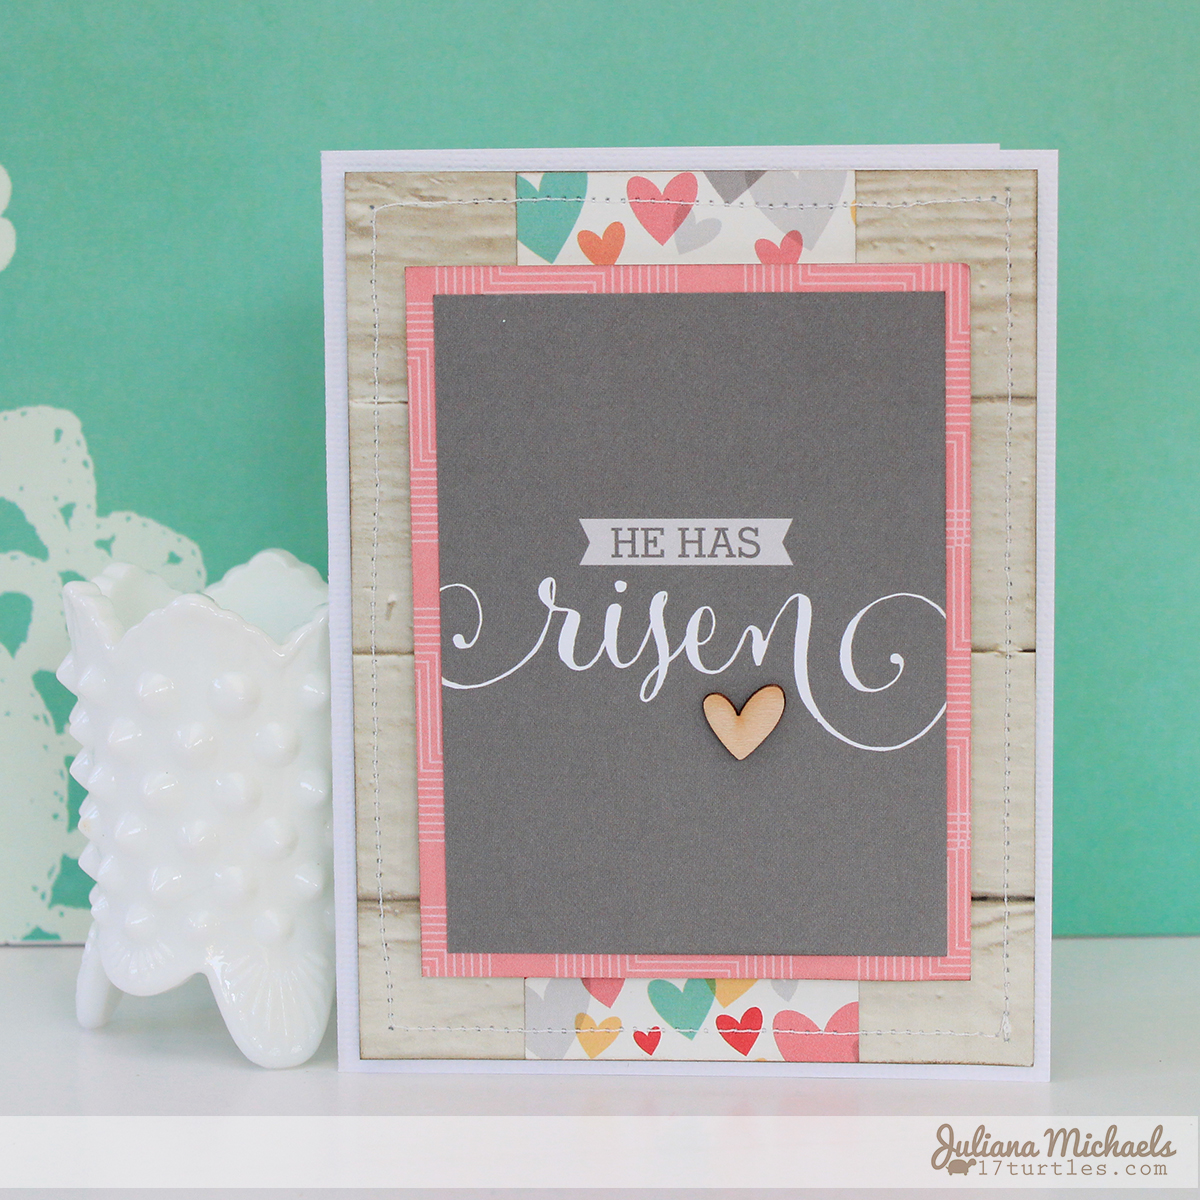 He Has Risen card by Juliana Michaels for Elle's Studio April Kit